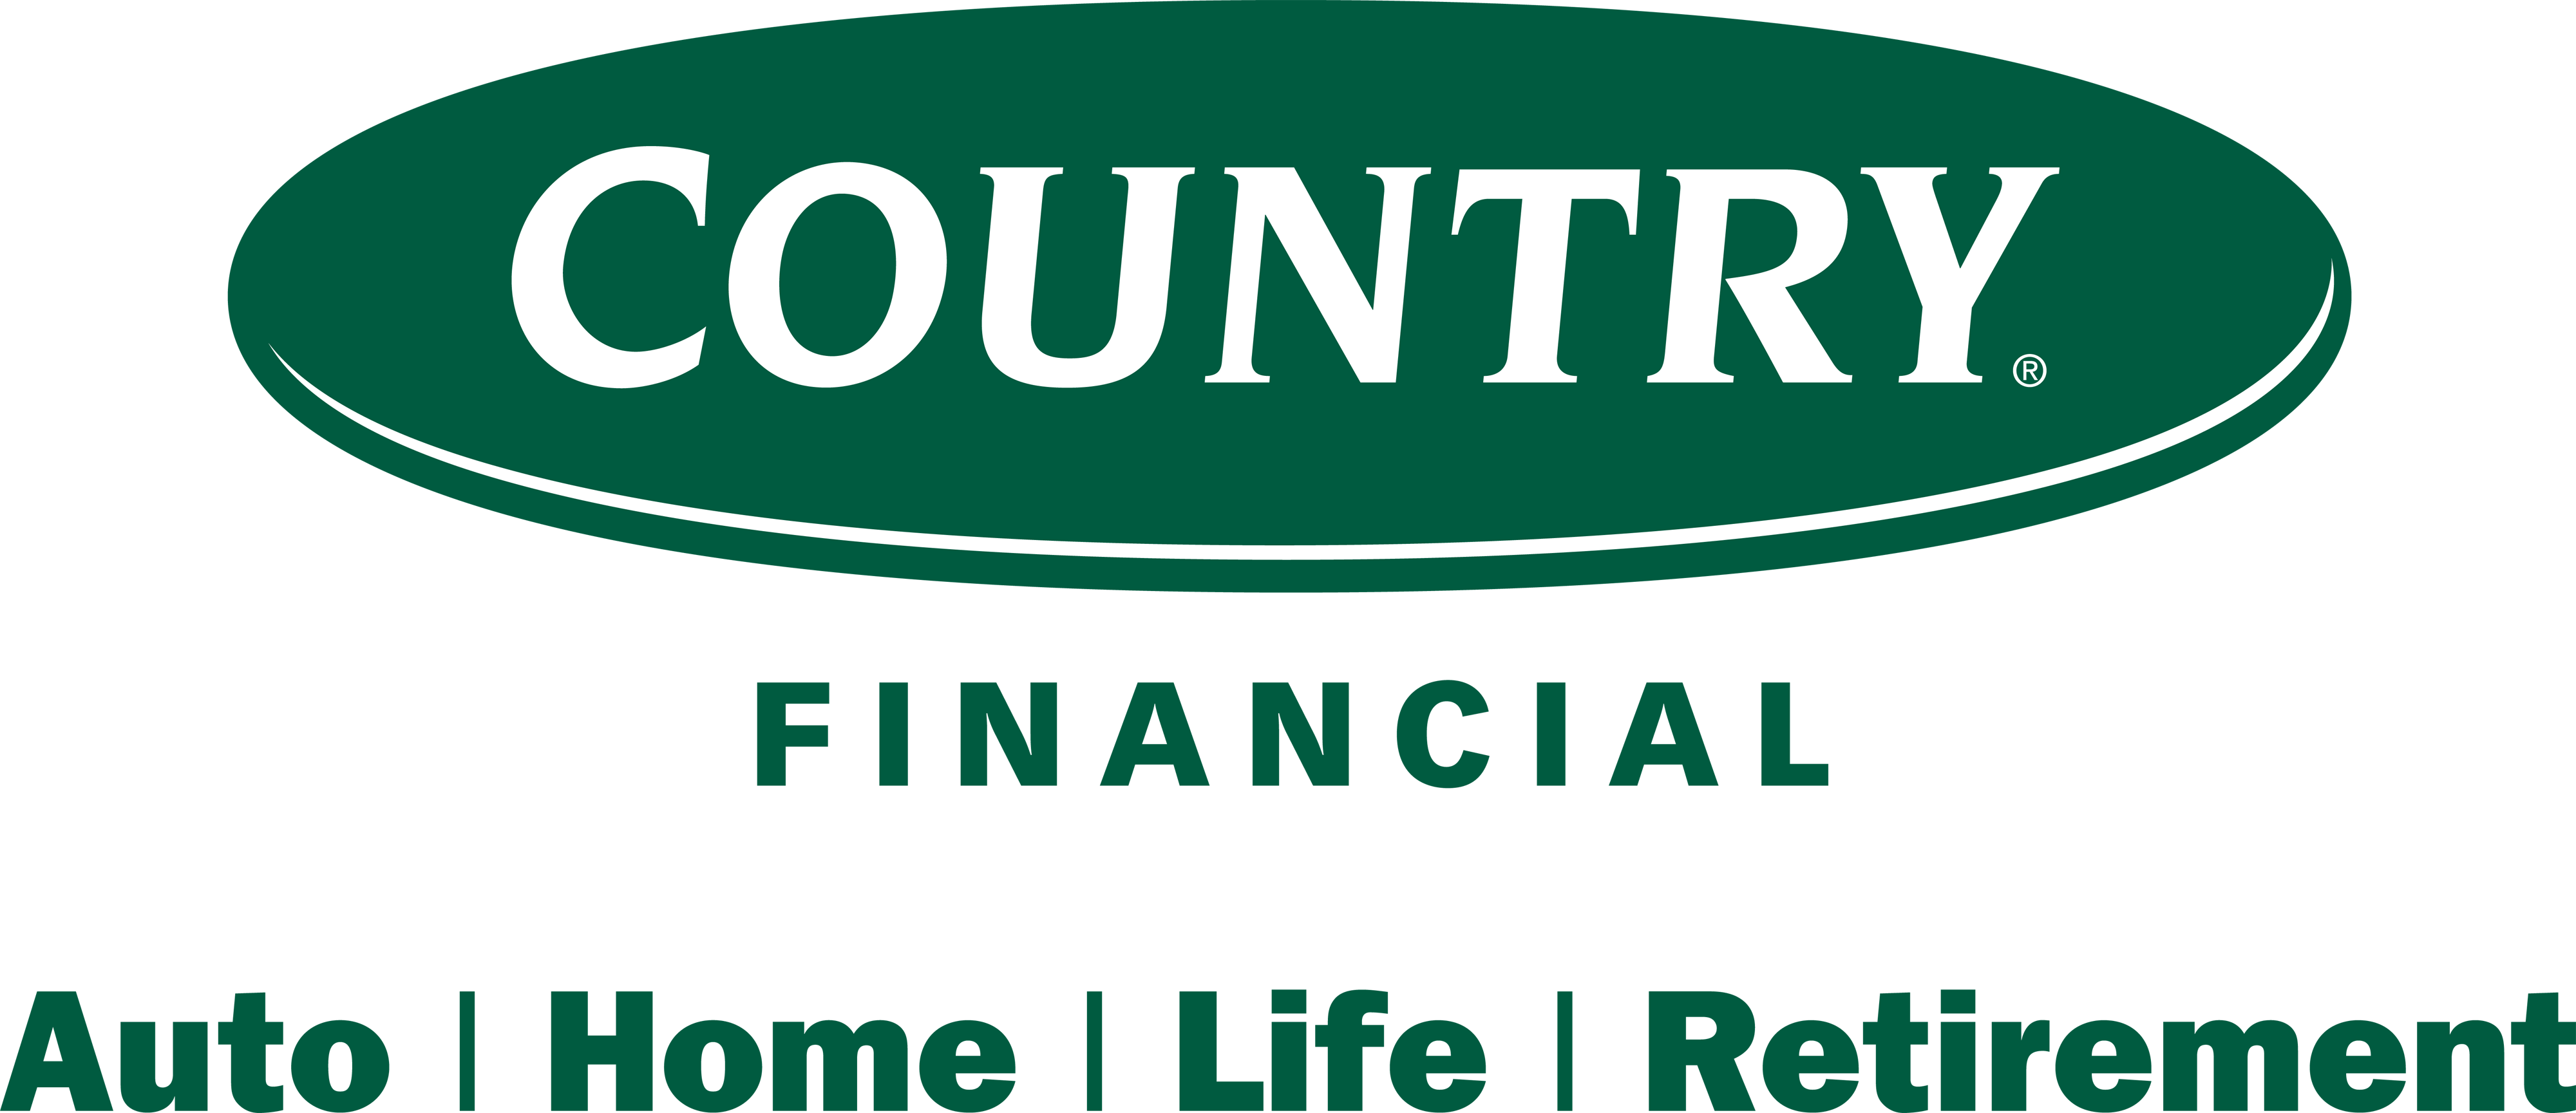 Country financial png. Logo fox valley park